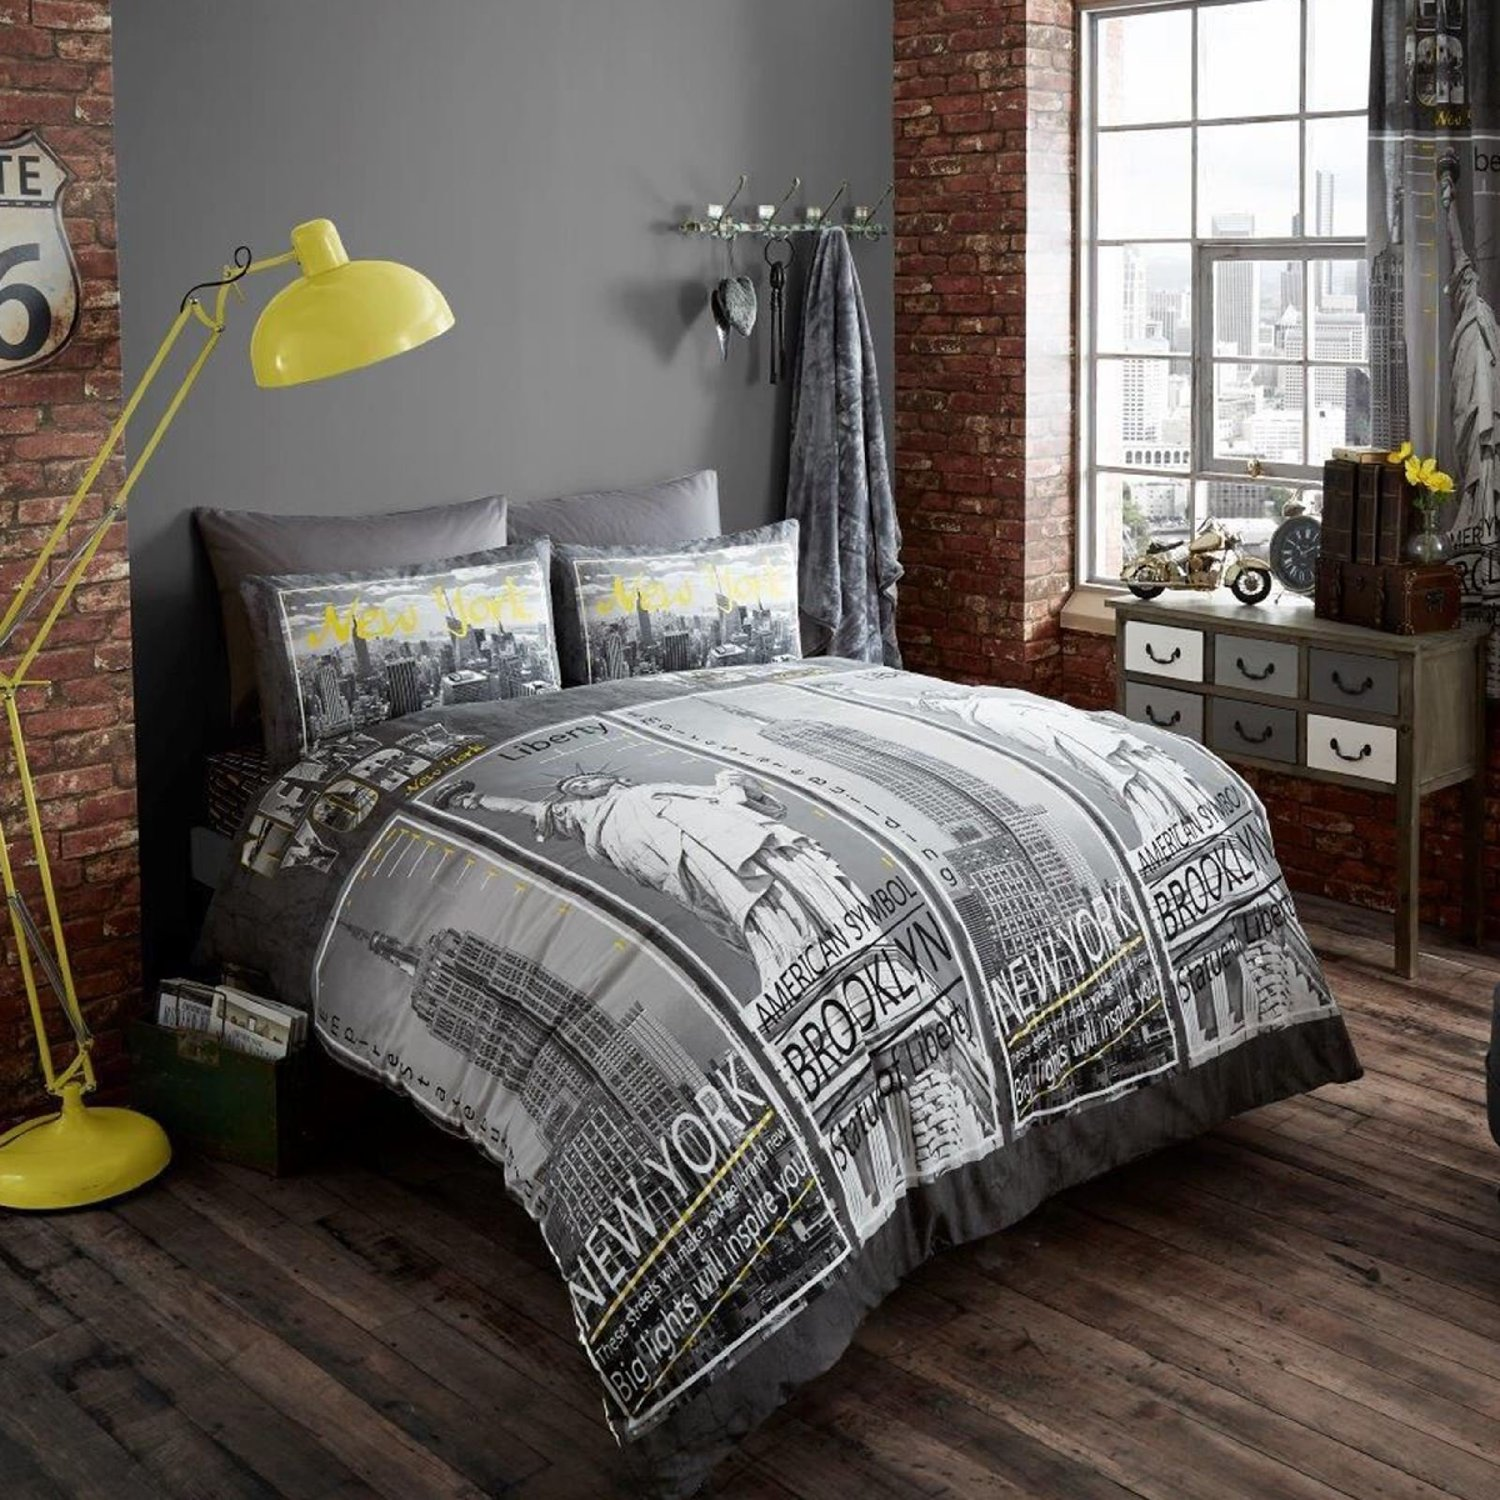 New York Bedroom Ideas Total Fab New York City Skyline Bedding & Nyc Themed Bedroom Ideas